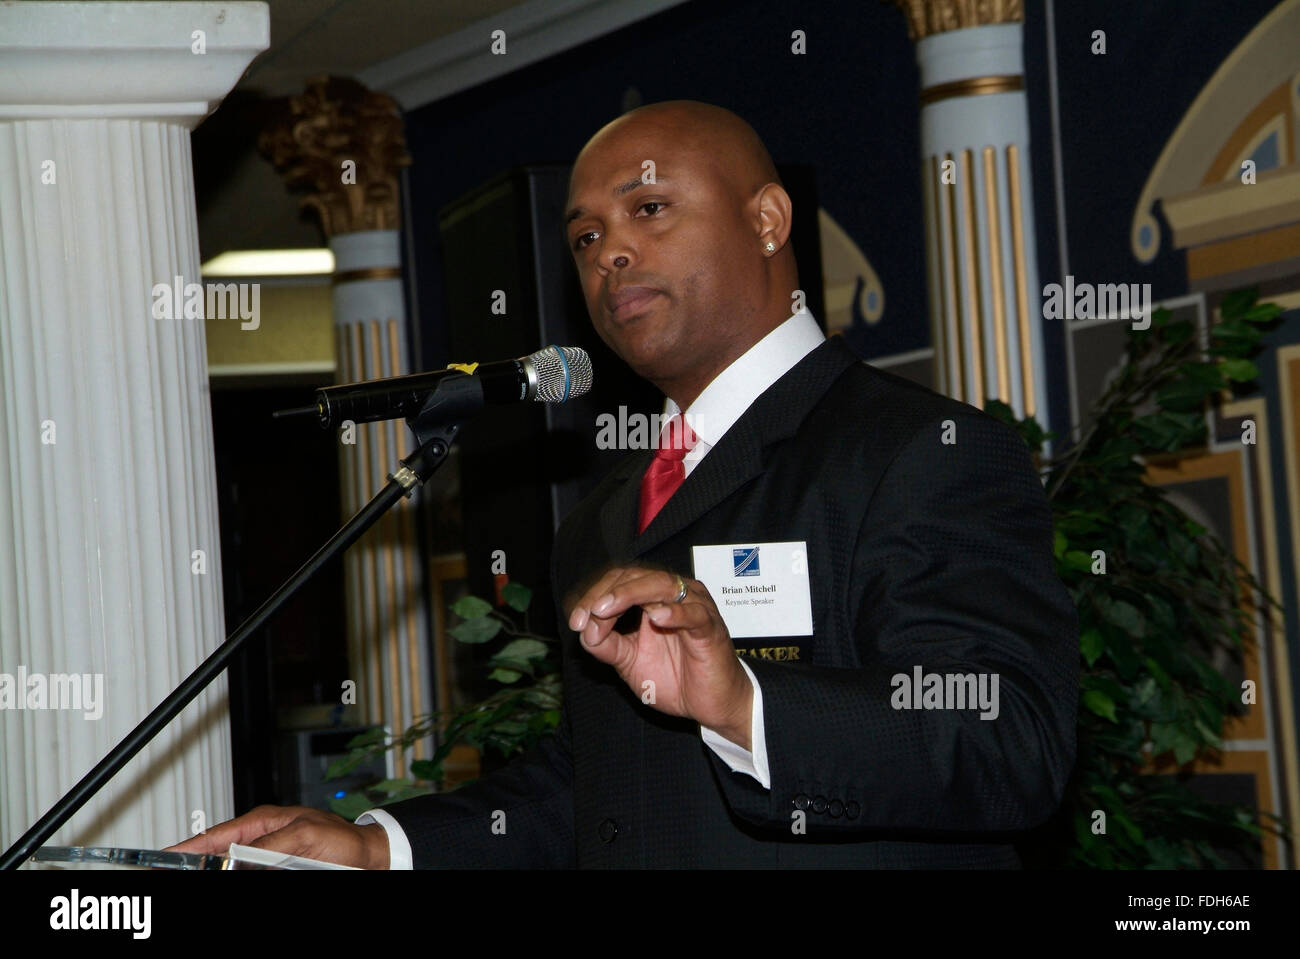 former NFL Football star ( formerly with Redskins and Giants ) and TV personality Brian Mitchell was the lkeynote - Stock Image